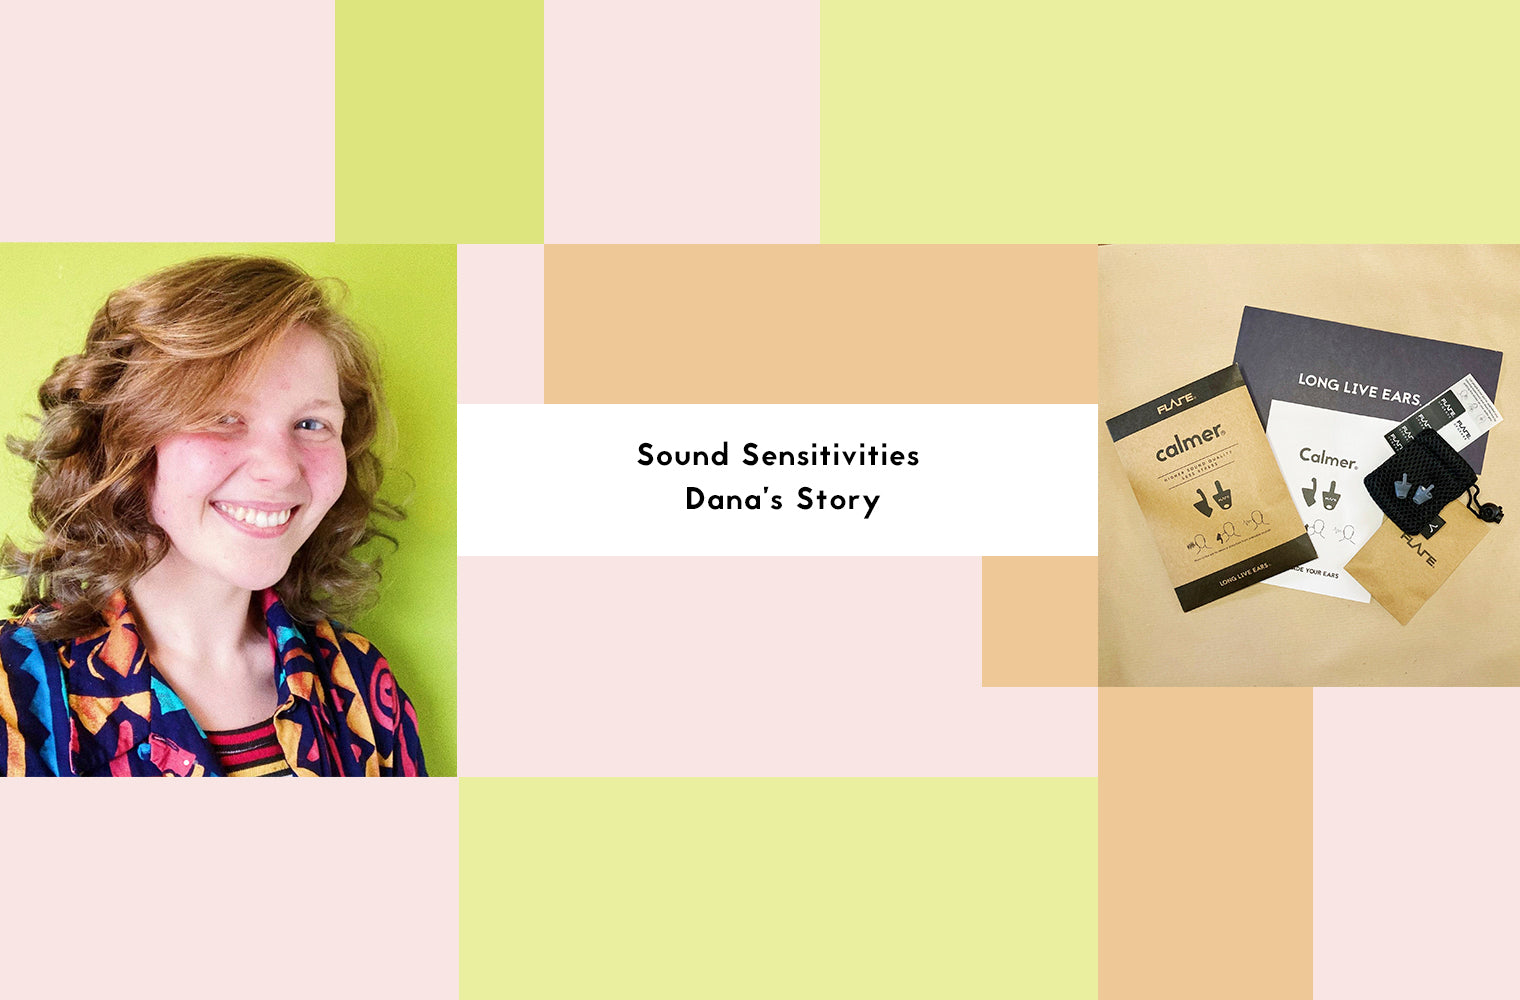 Sound Sensitivities And Calmer: Dana's Story